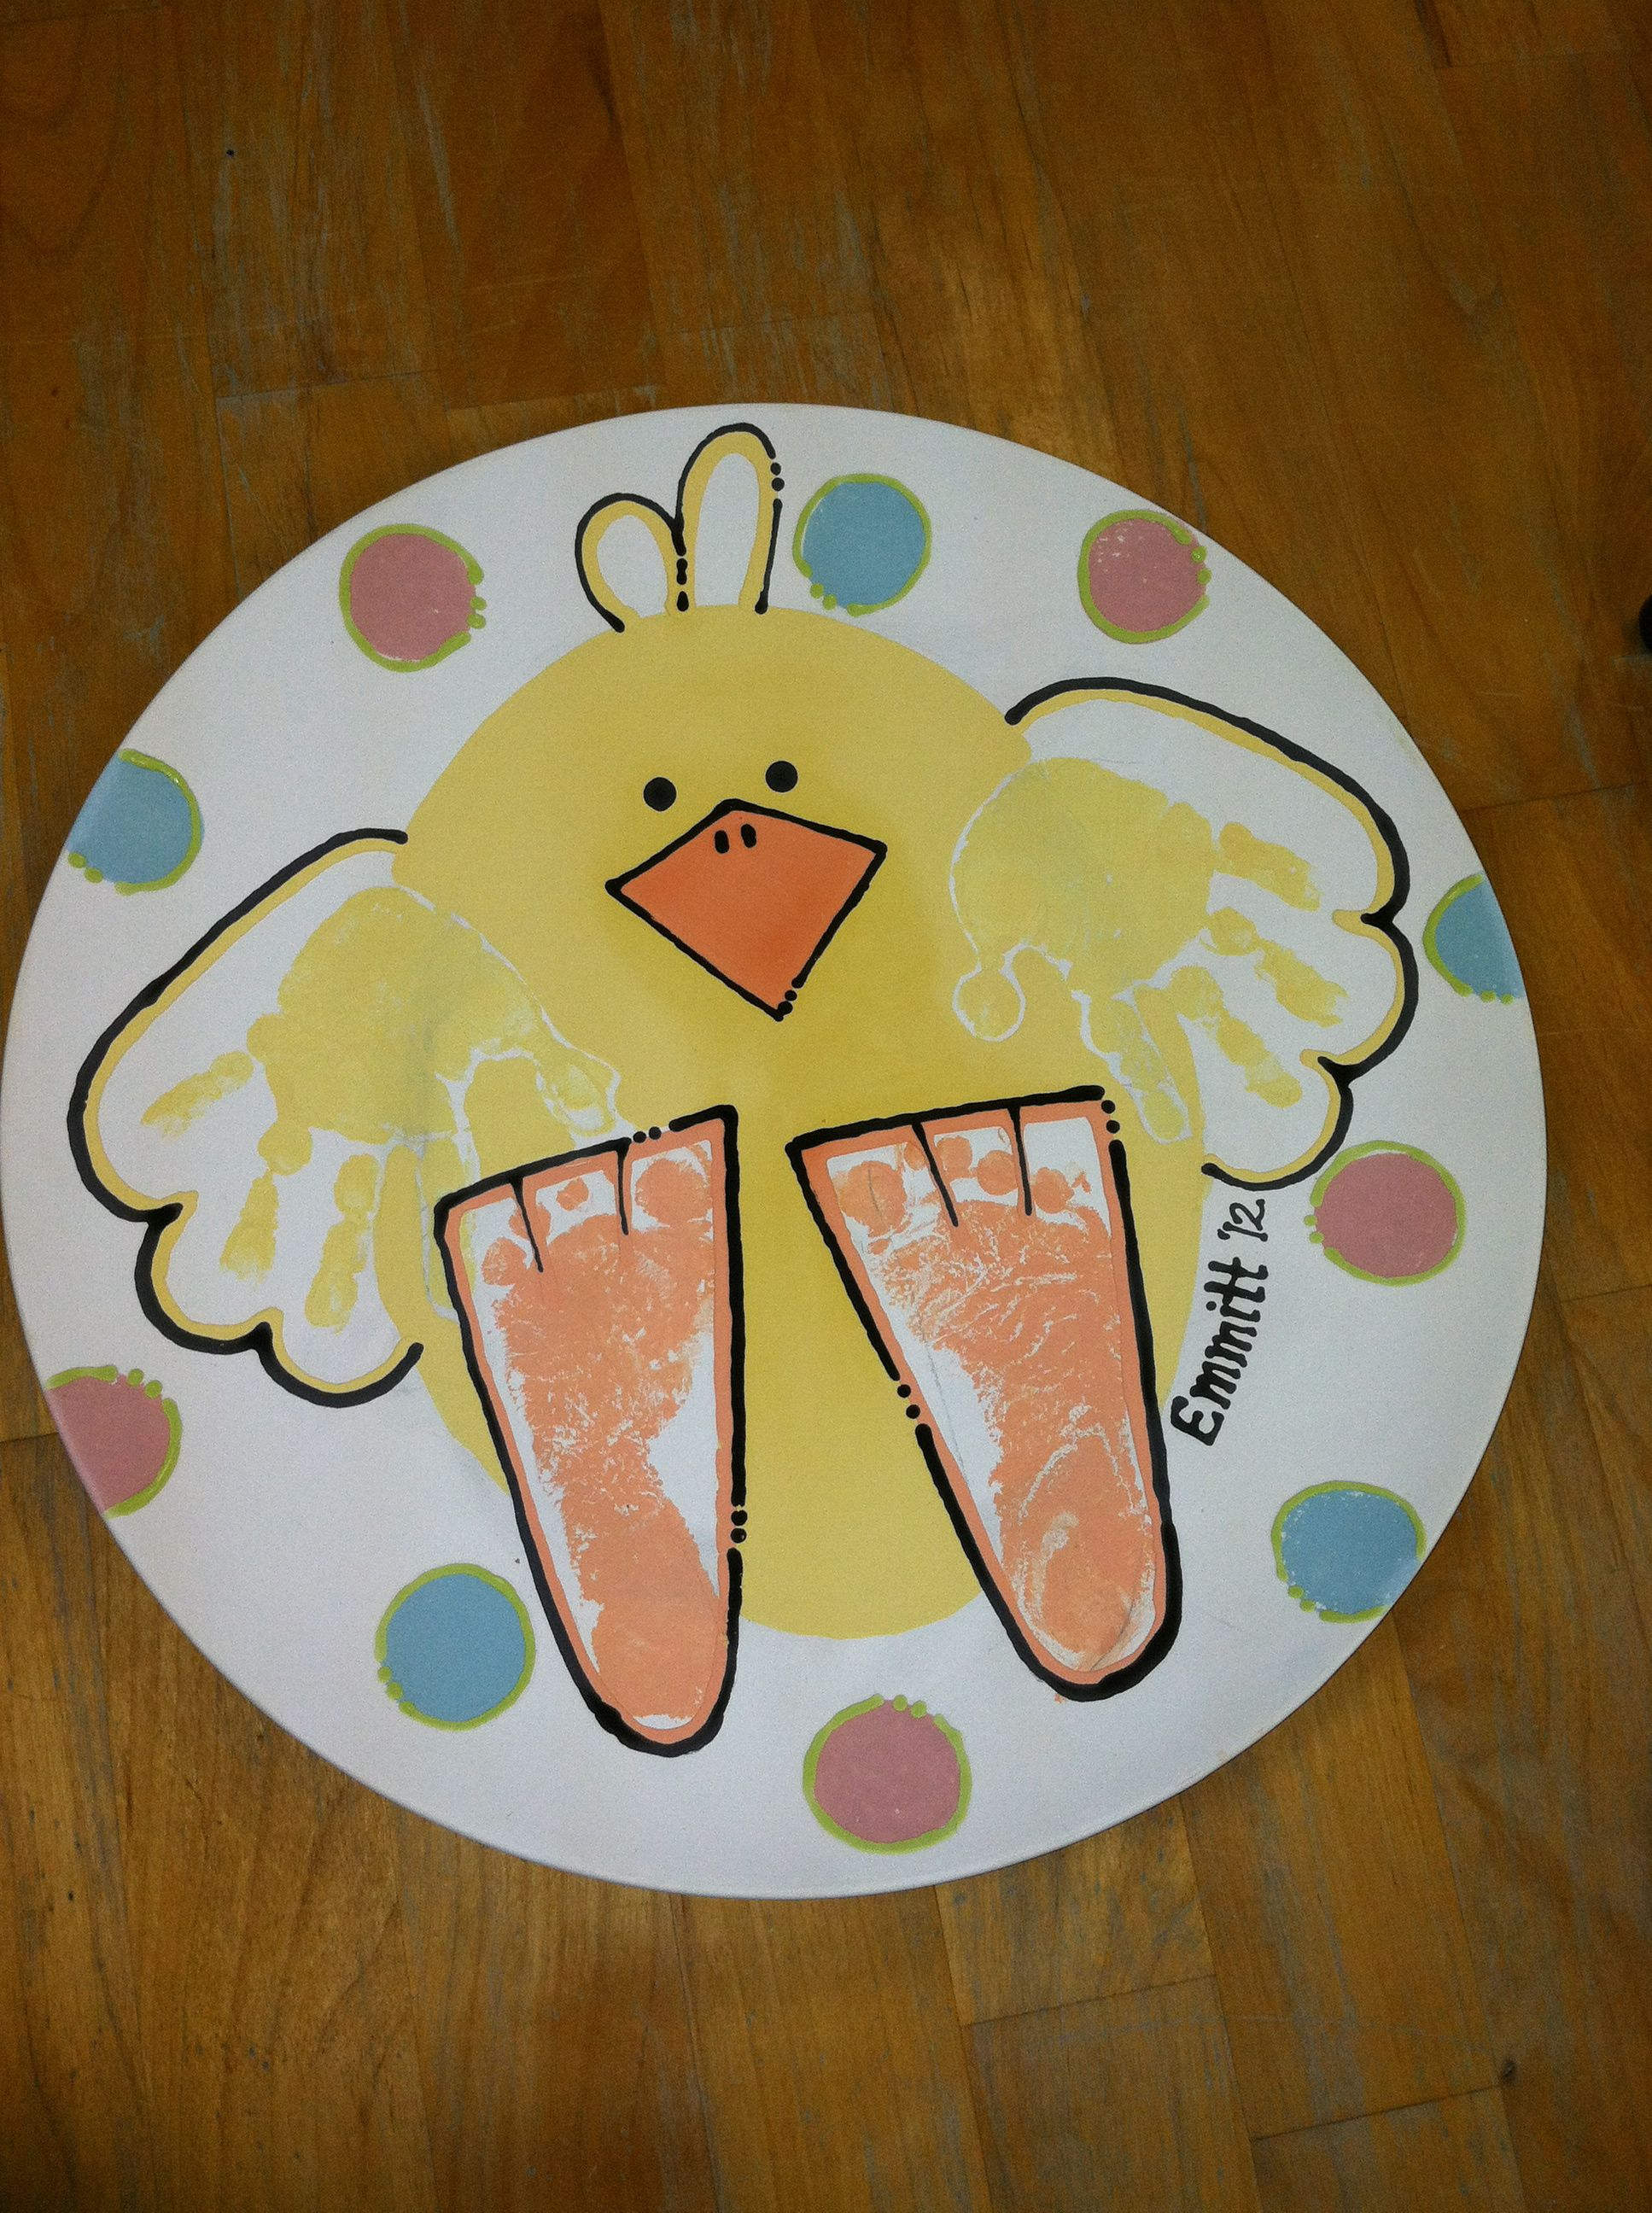 Super Cute Ceramic Plate For Easter Or Spring Pottery Painting Designs Easter Pottery Ideas Easter Pottery